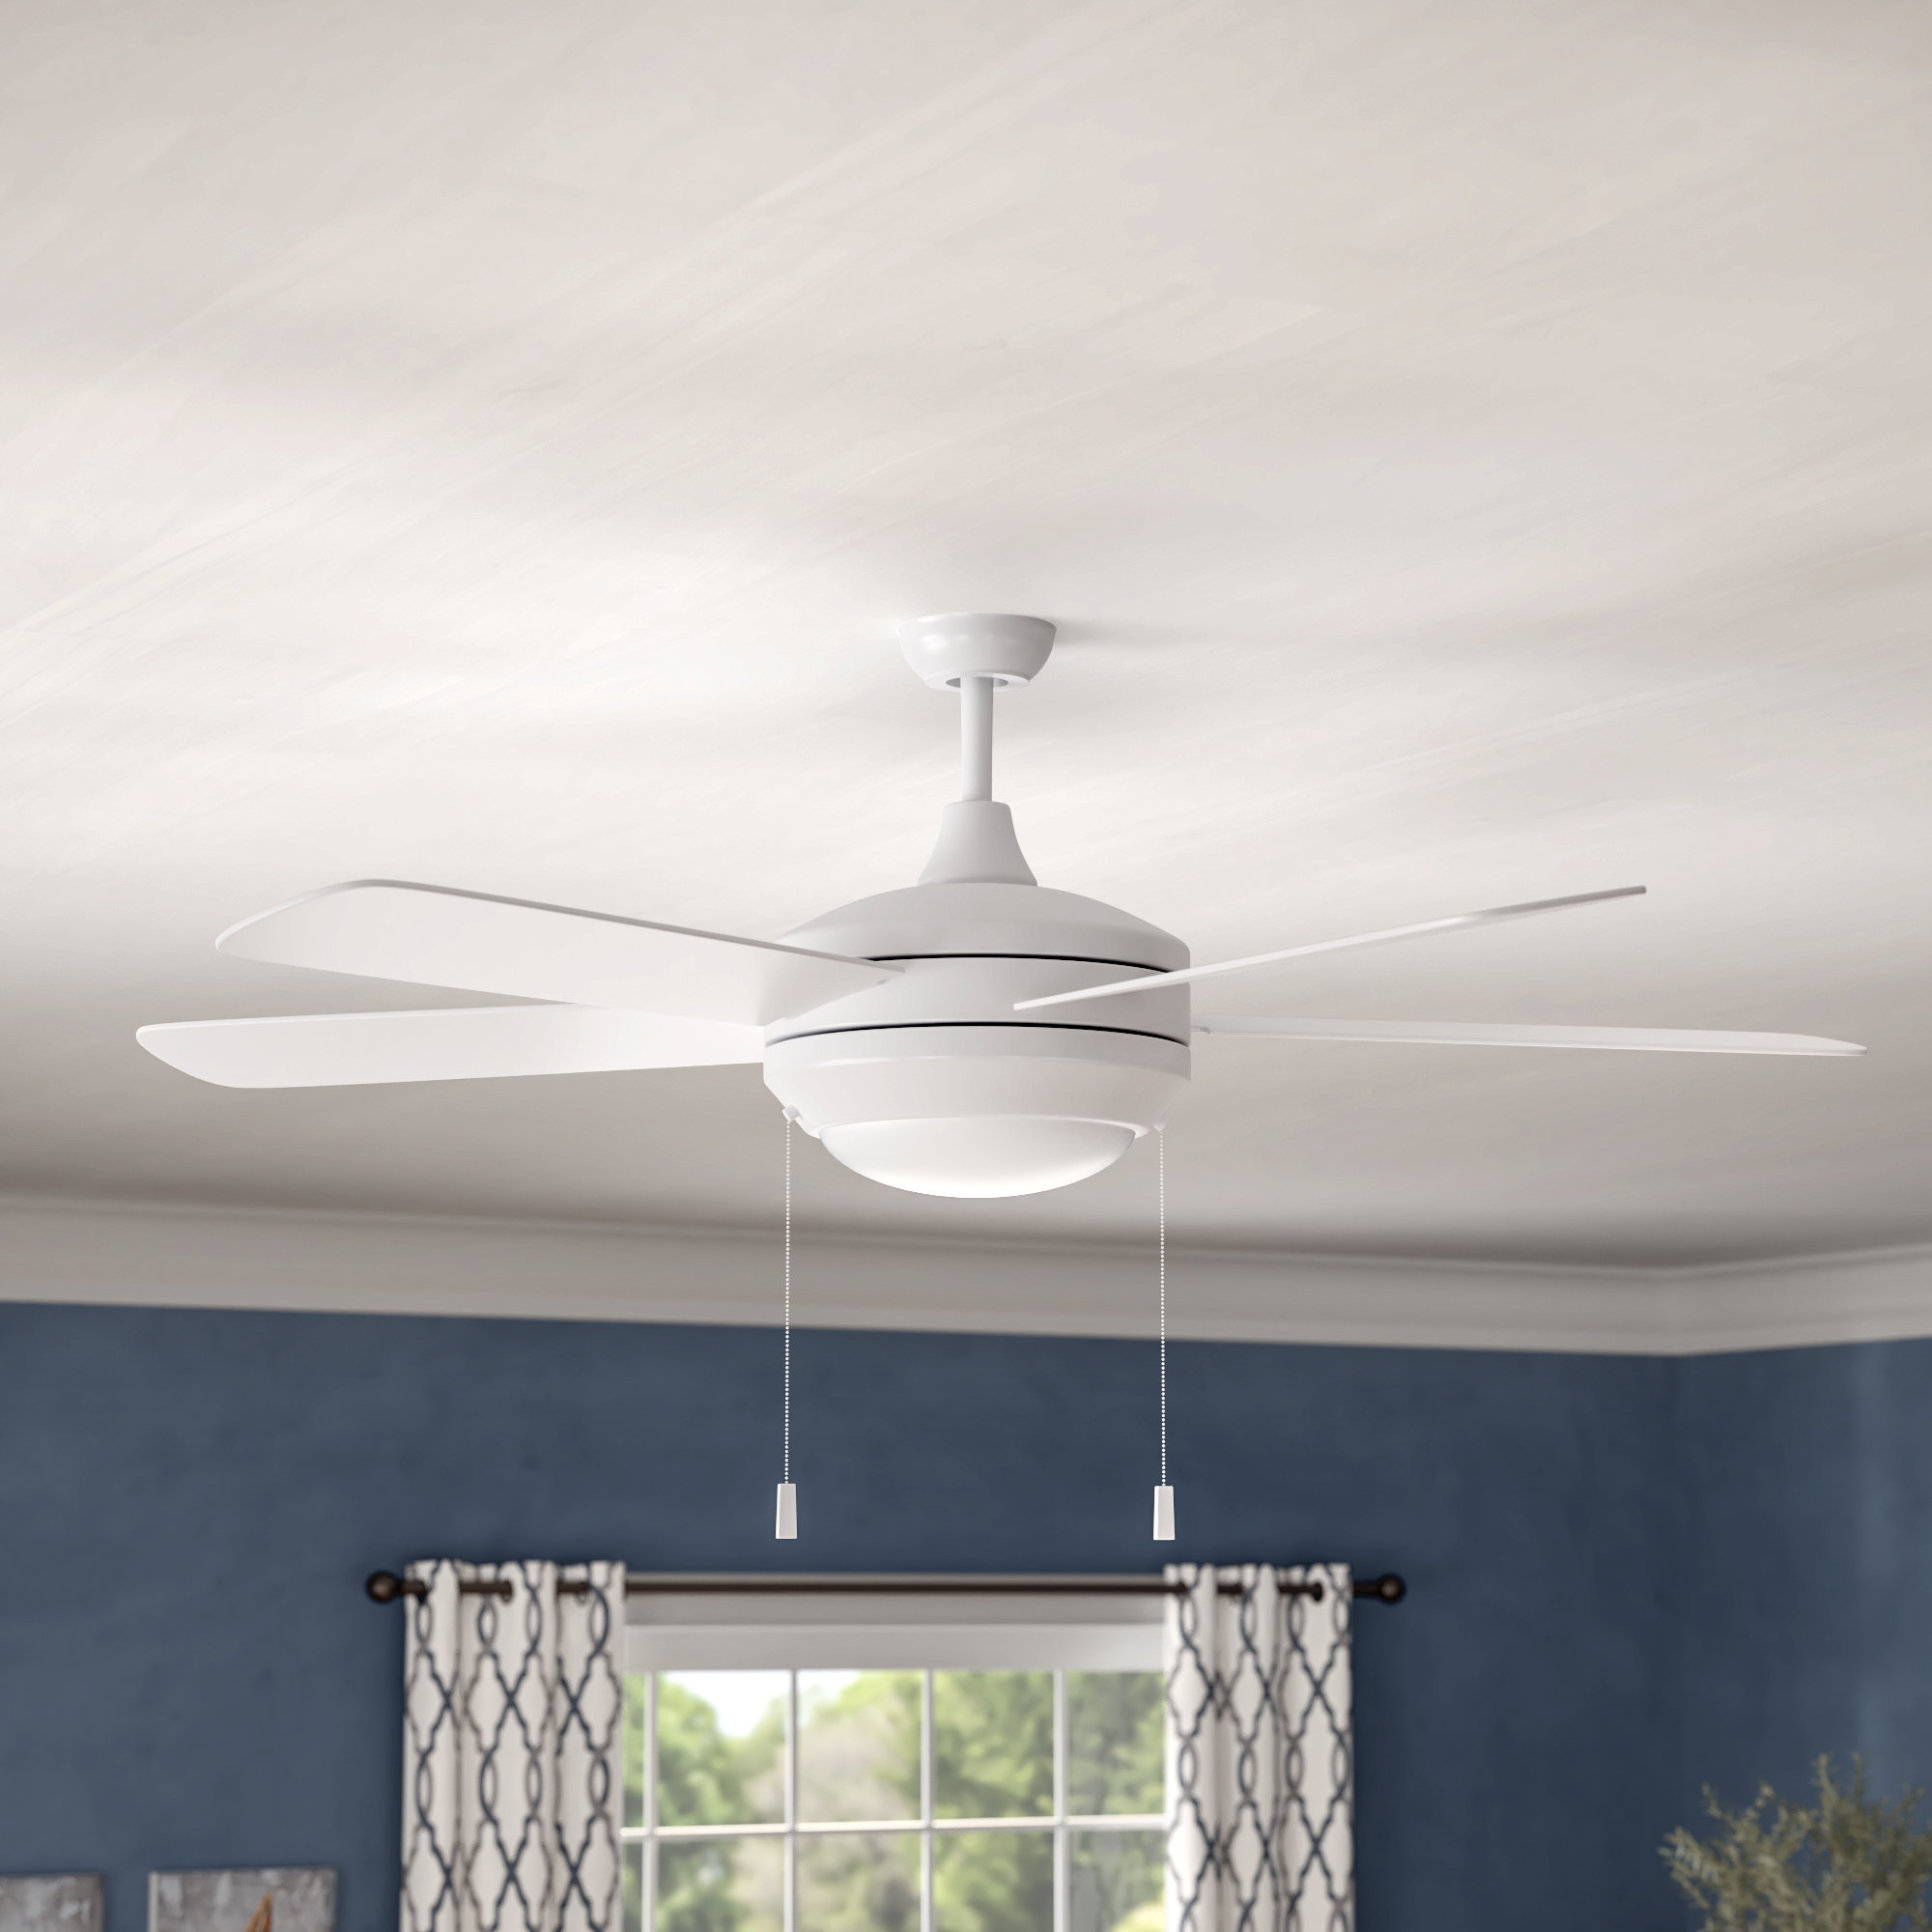 "Cedarton Hugger 5 Blade Led Ceiling Fans With Regard To 2020 52"" Spiker 5 Blade Led Ceiling Fan (View 6 of 20)"